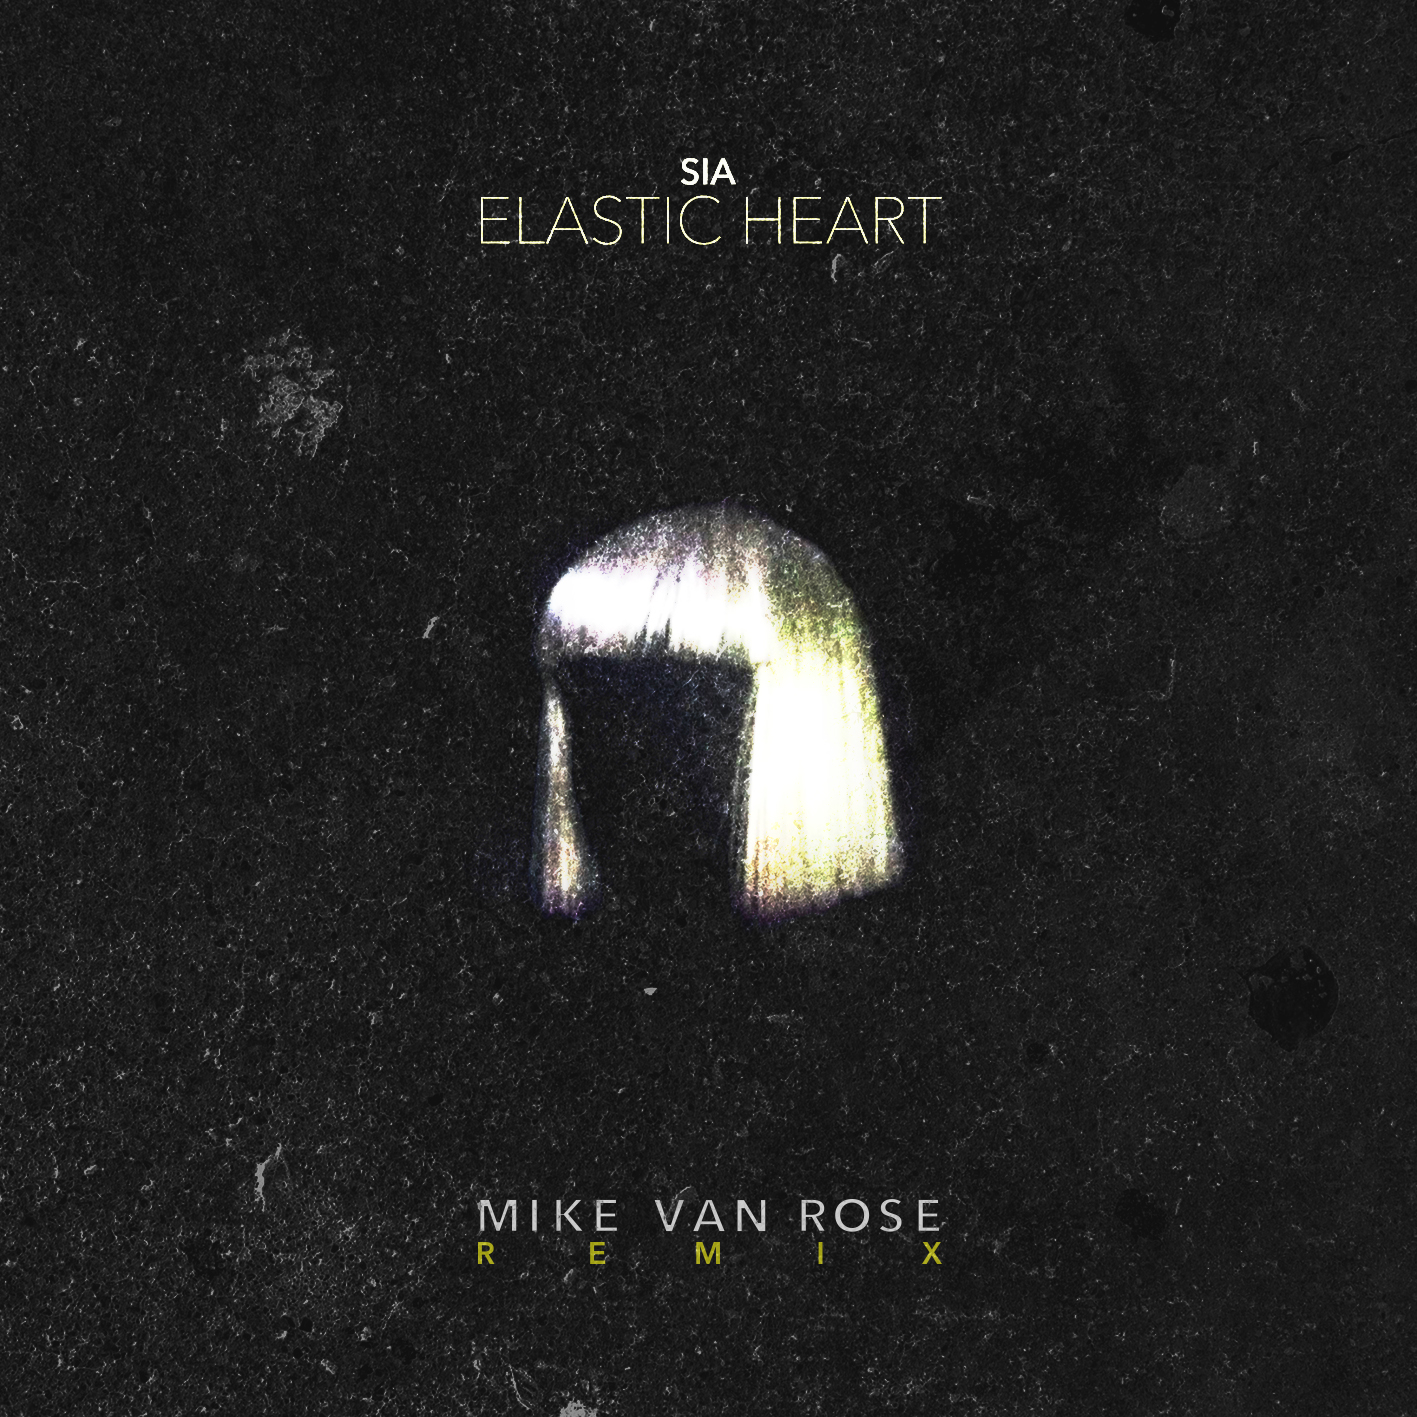 Sia - Elastic Heart (Mike Van Rose Remix)